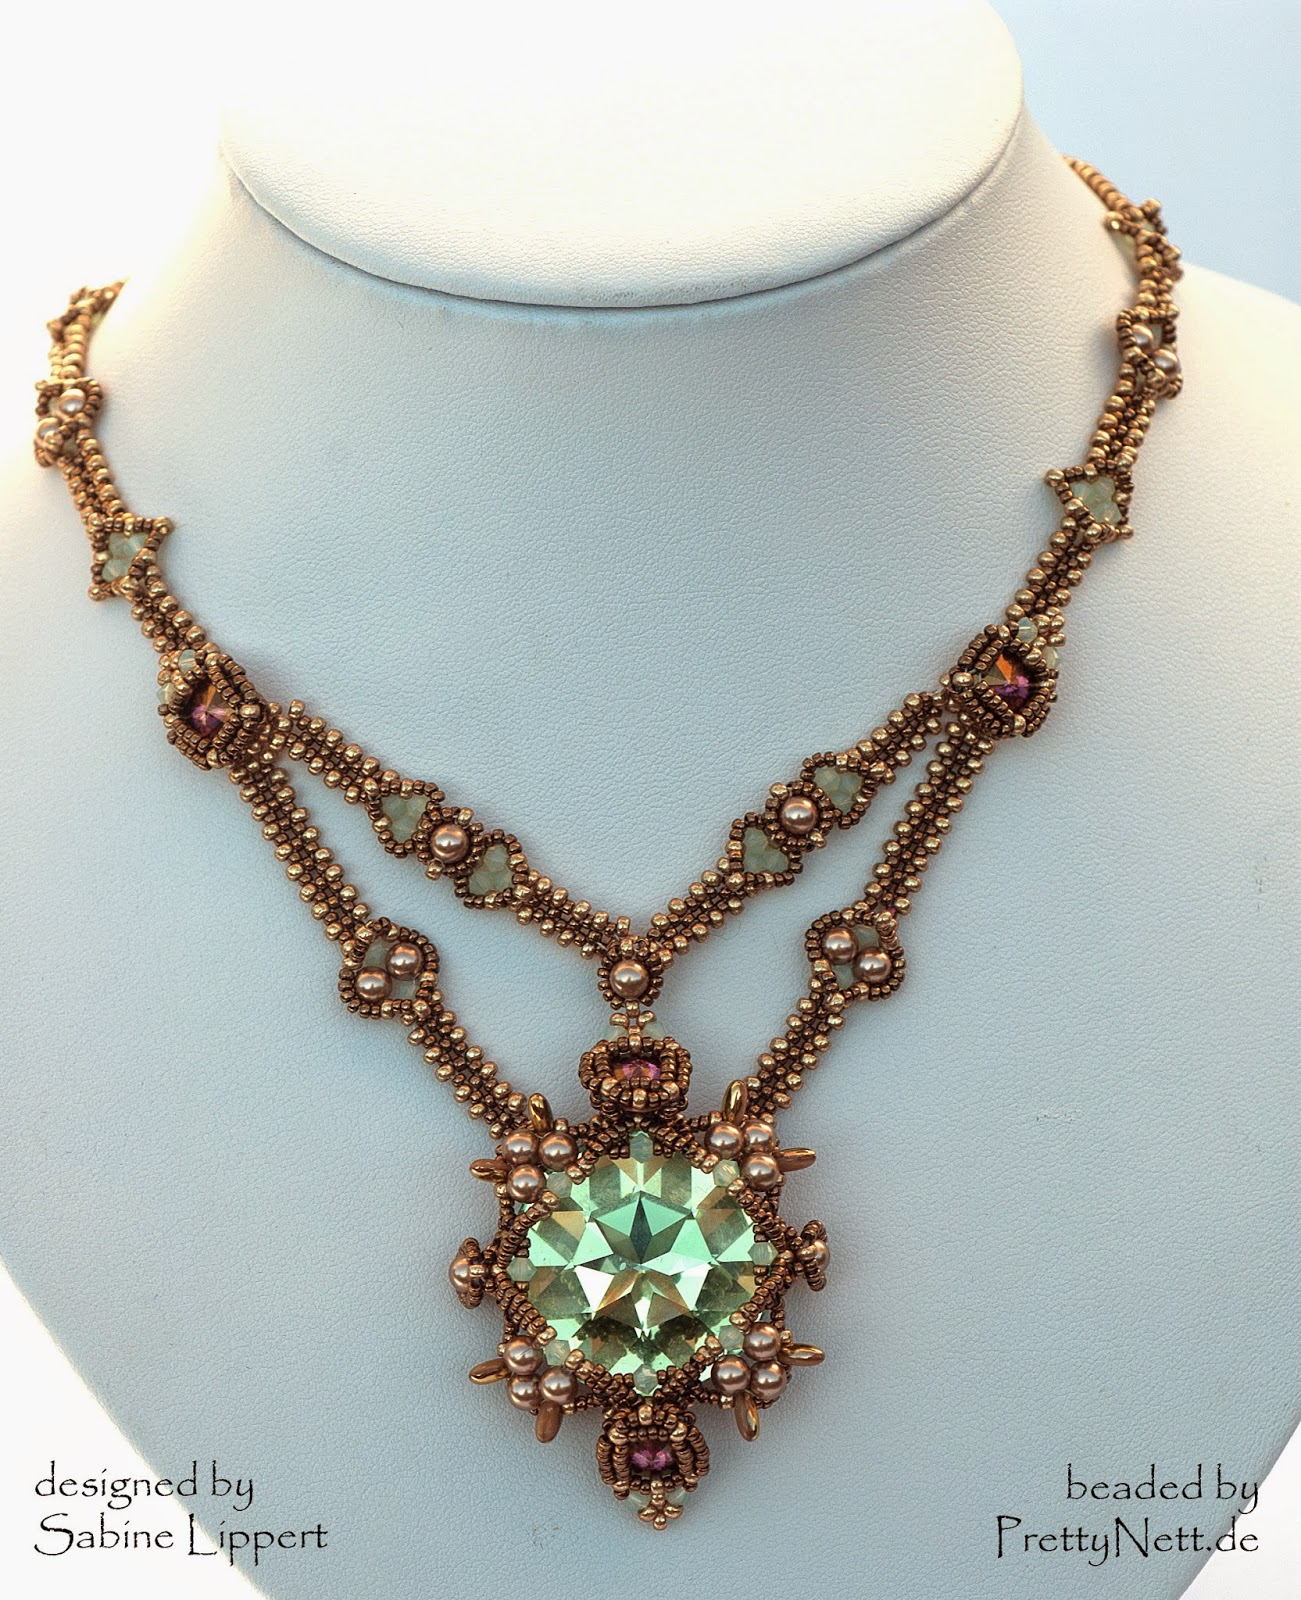 necklace Juliet beaded by PrettyNett.de